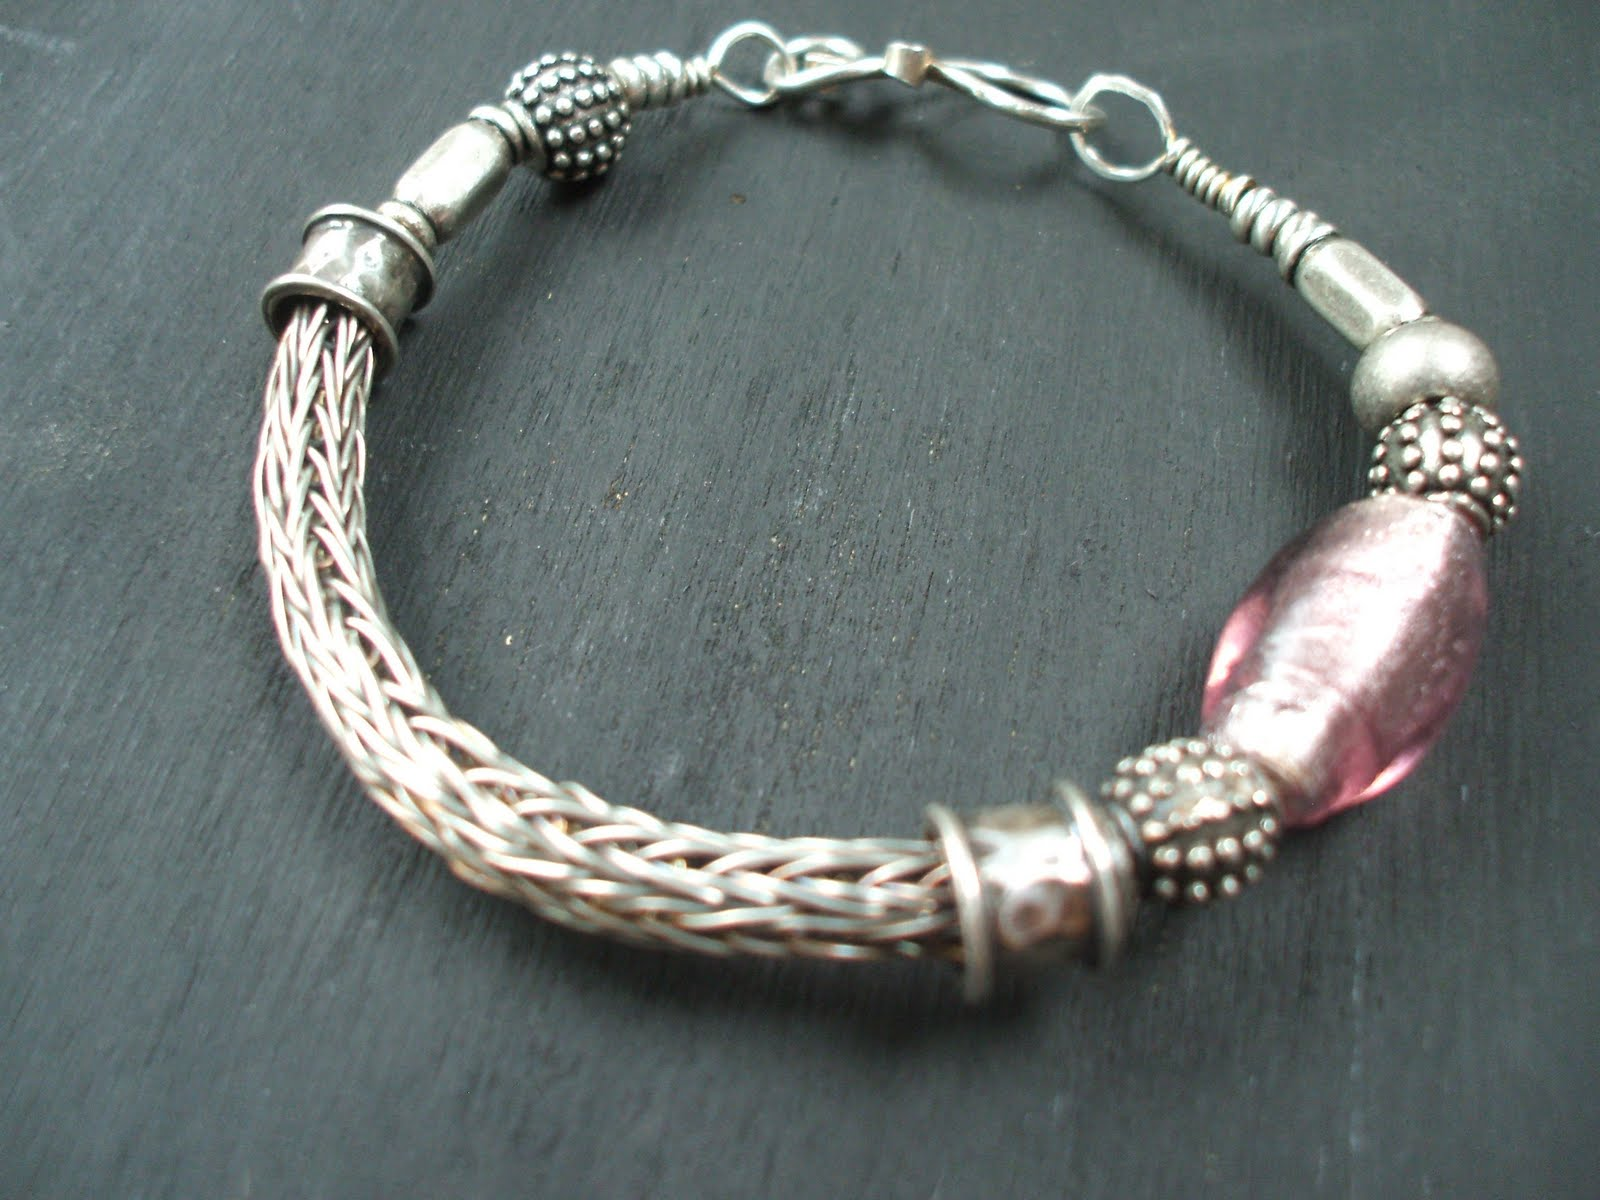 How to make viking knit chain « Jewellerymaker